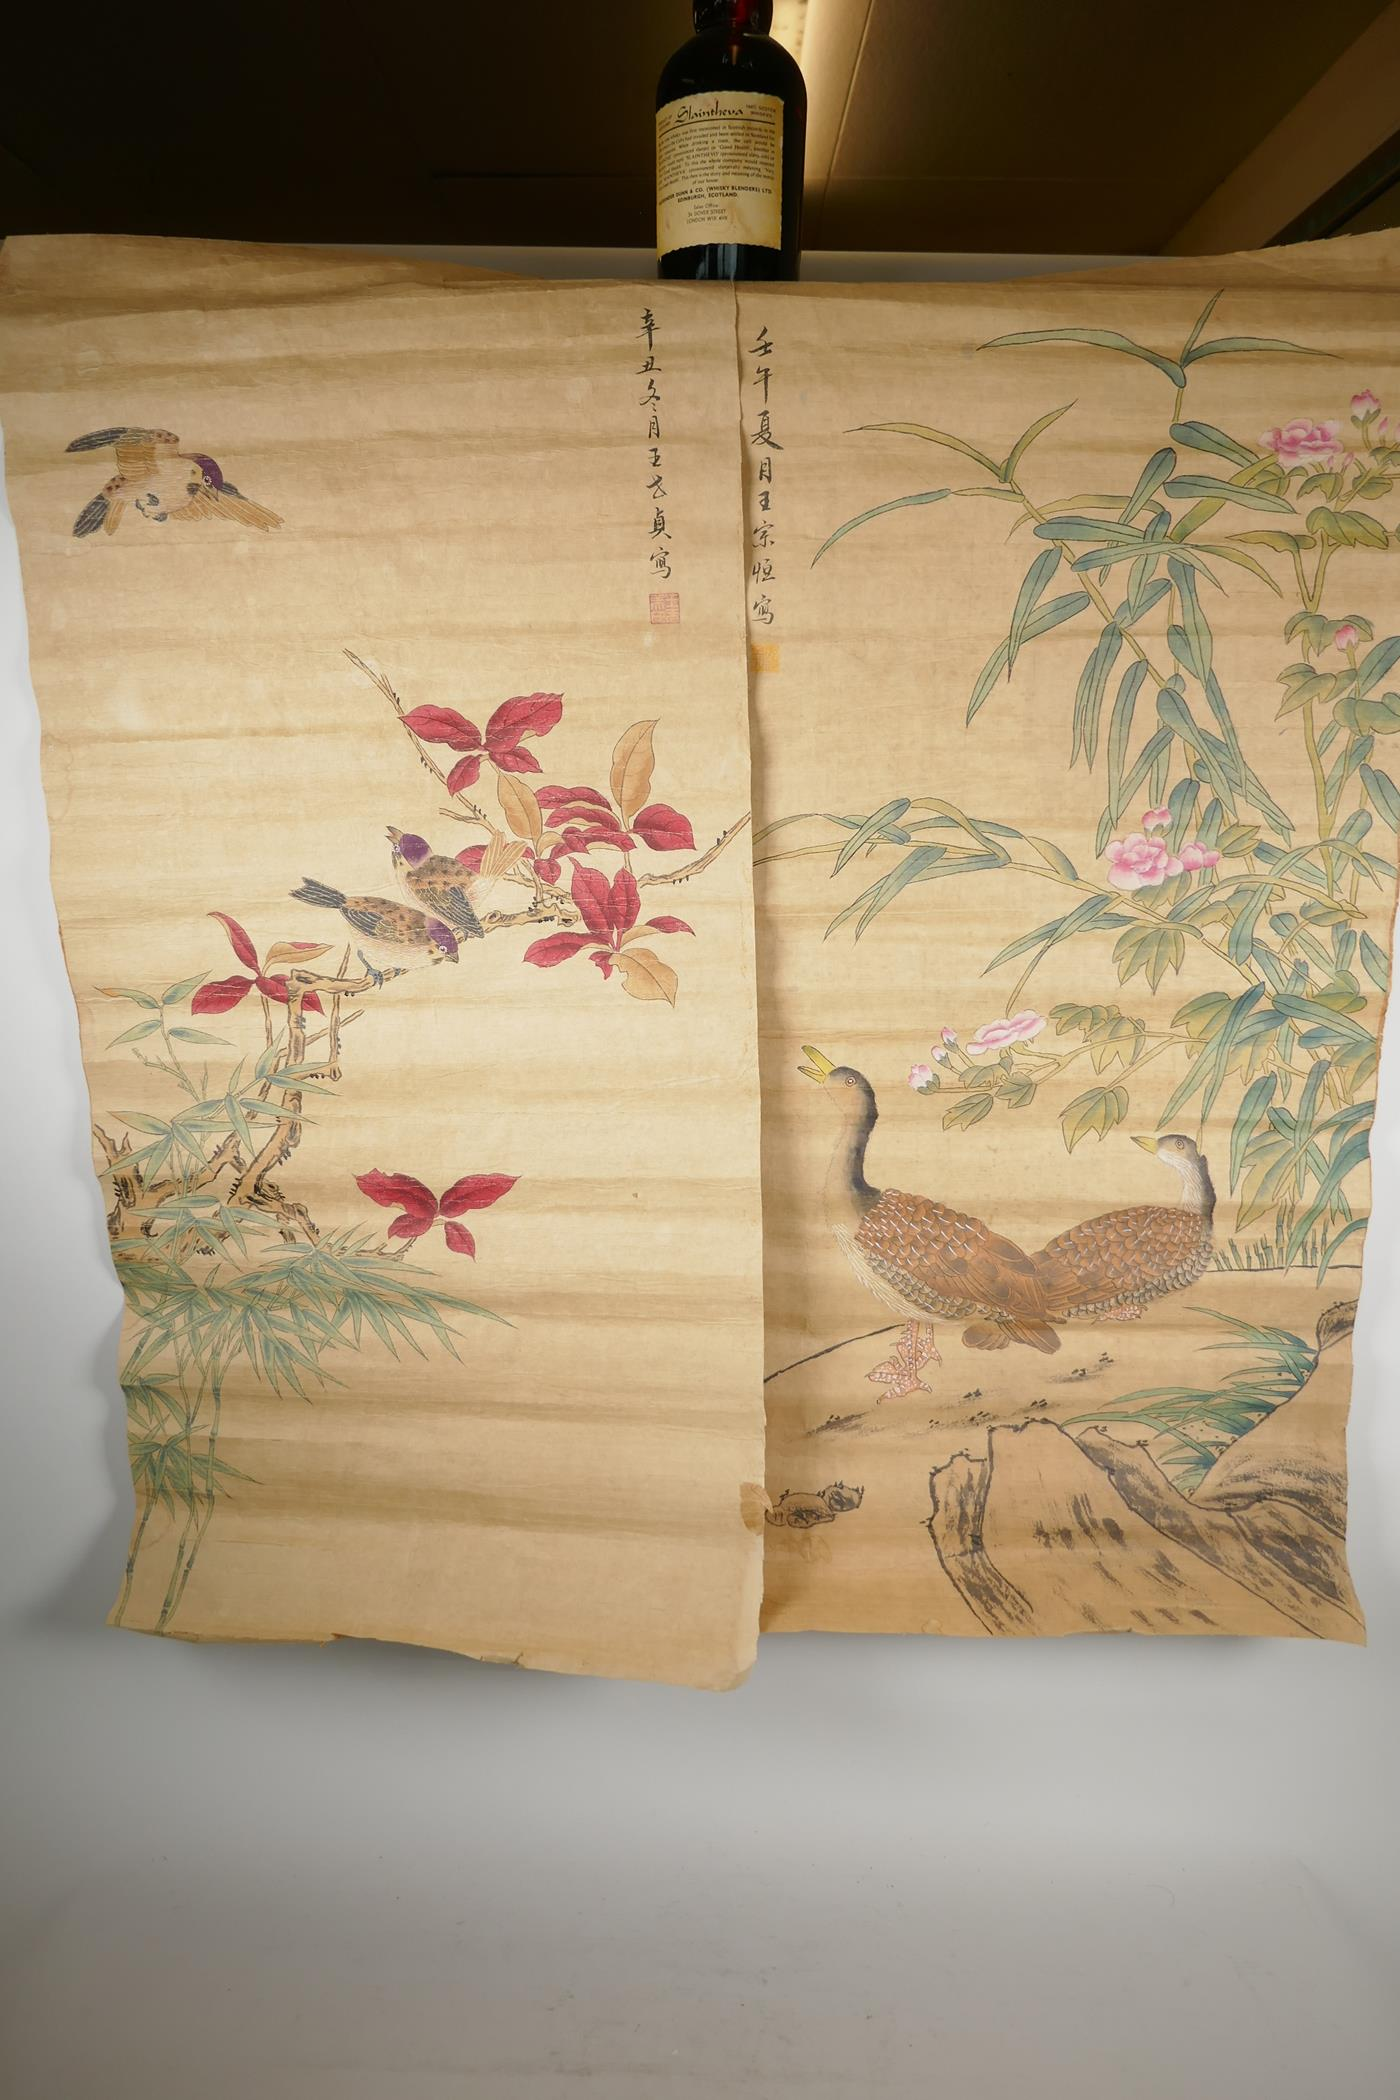 A Chinese watercolour scroll depicting waterfowl and flowers, and another similar with birds and - Image 3 of 3